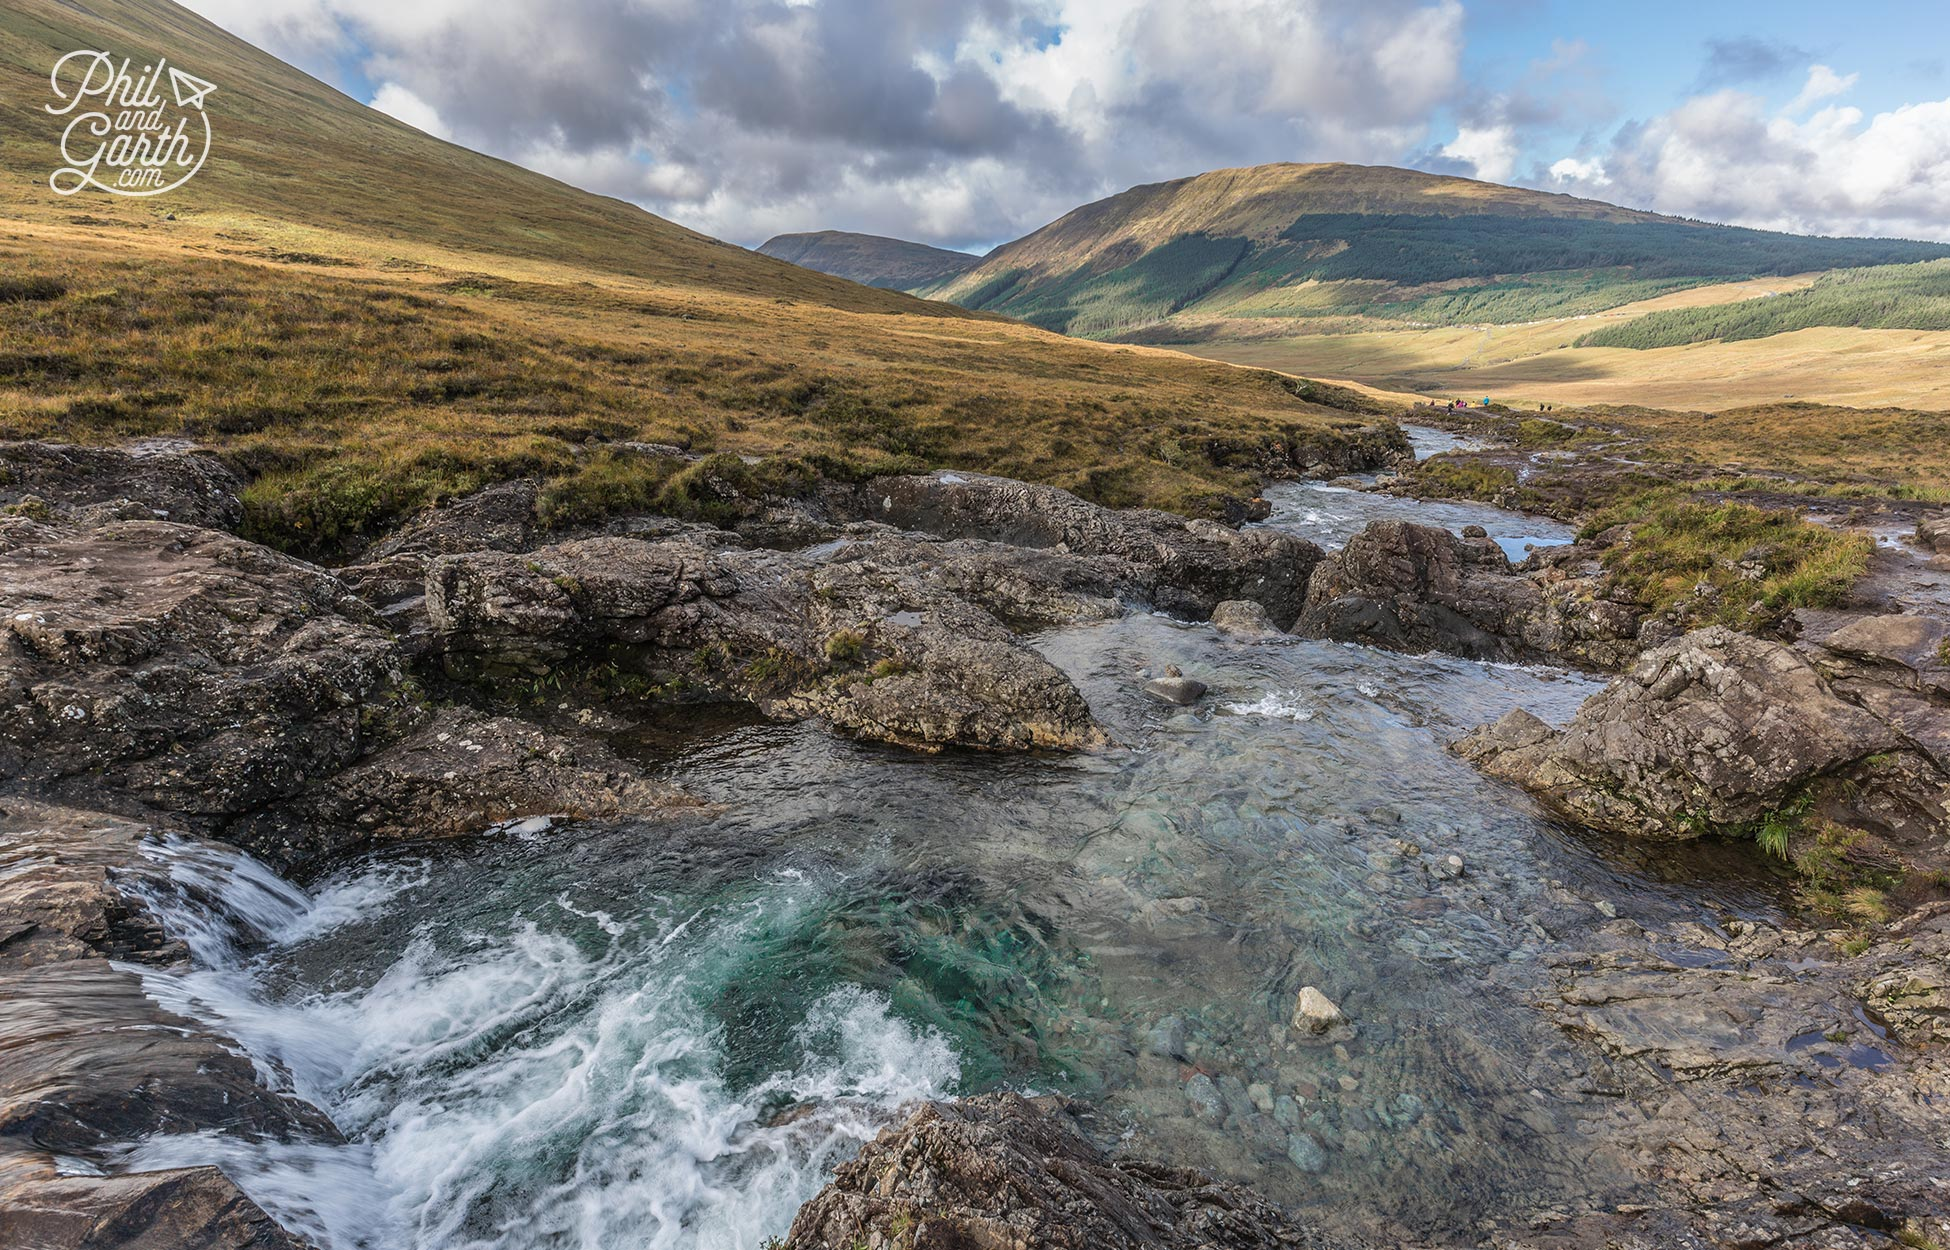 The beautiful rock pools of crystal clear spring water